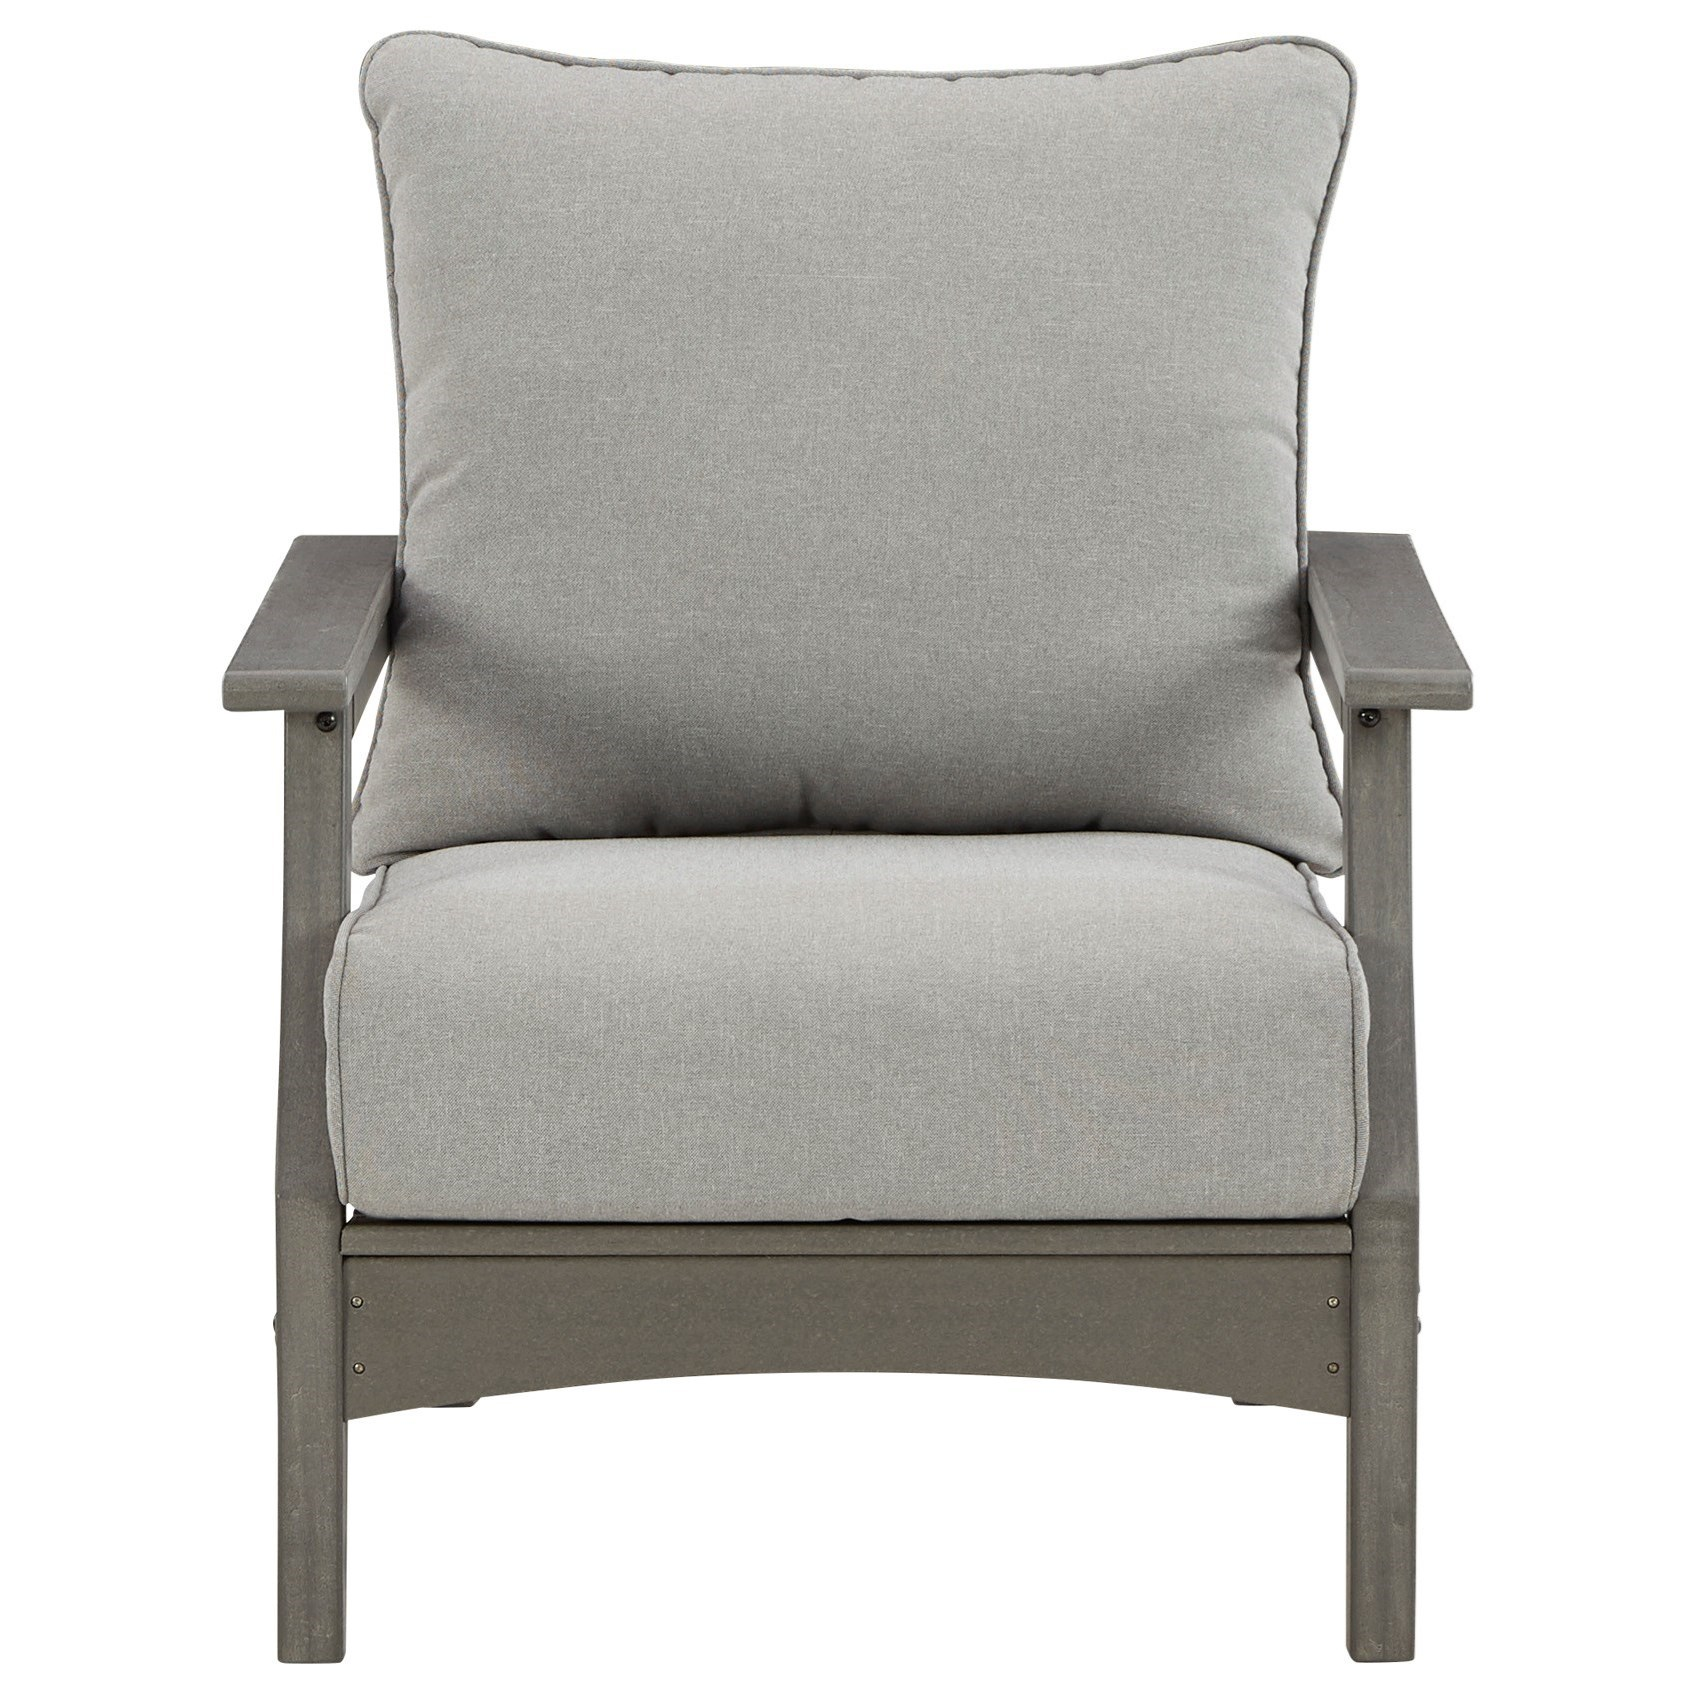 Visola Lounge Chair w/ Cushion by Signature at Walker's Furniture